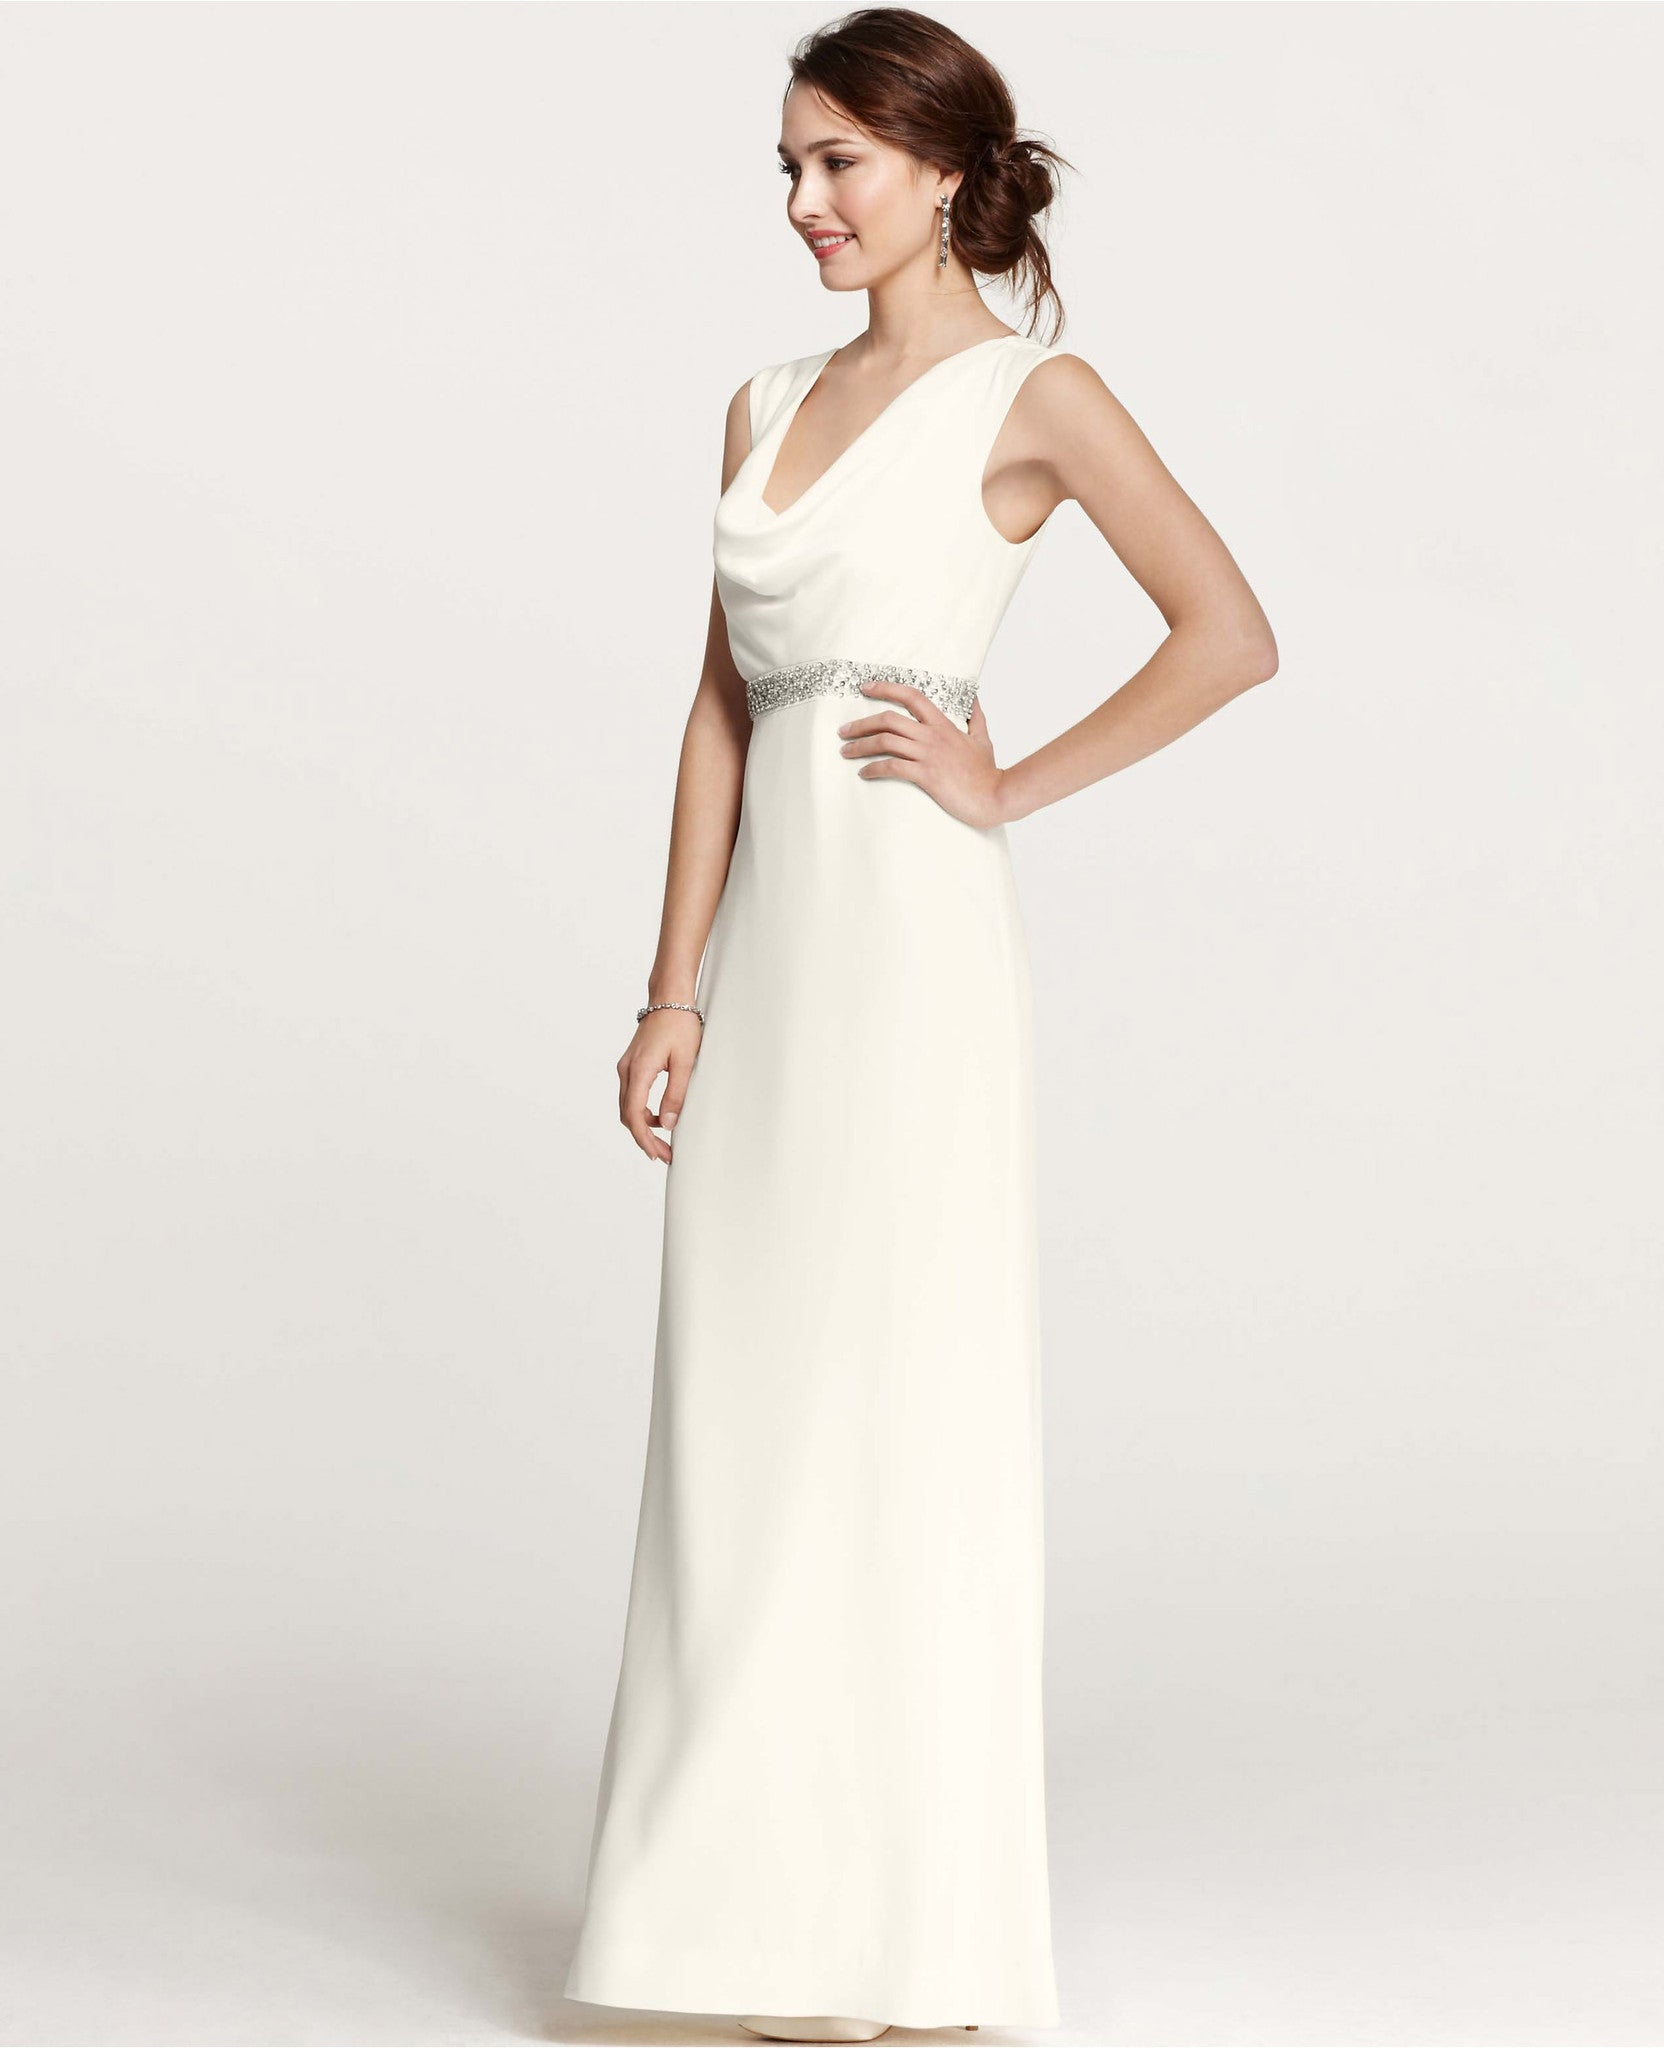 Ann taylor mya cowl neck wedding gown adinas bridal ann taylor mya cowl neck wedding gown junglespirit Image collections